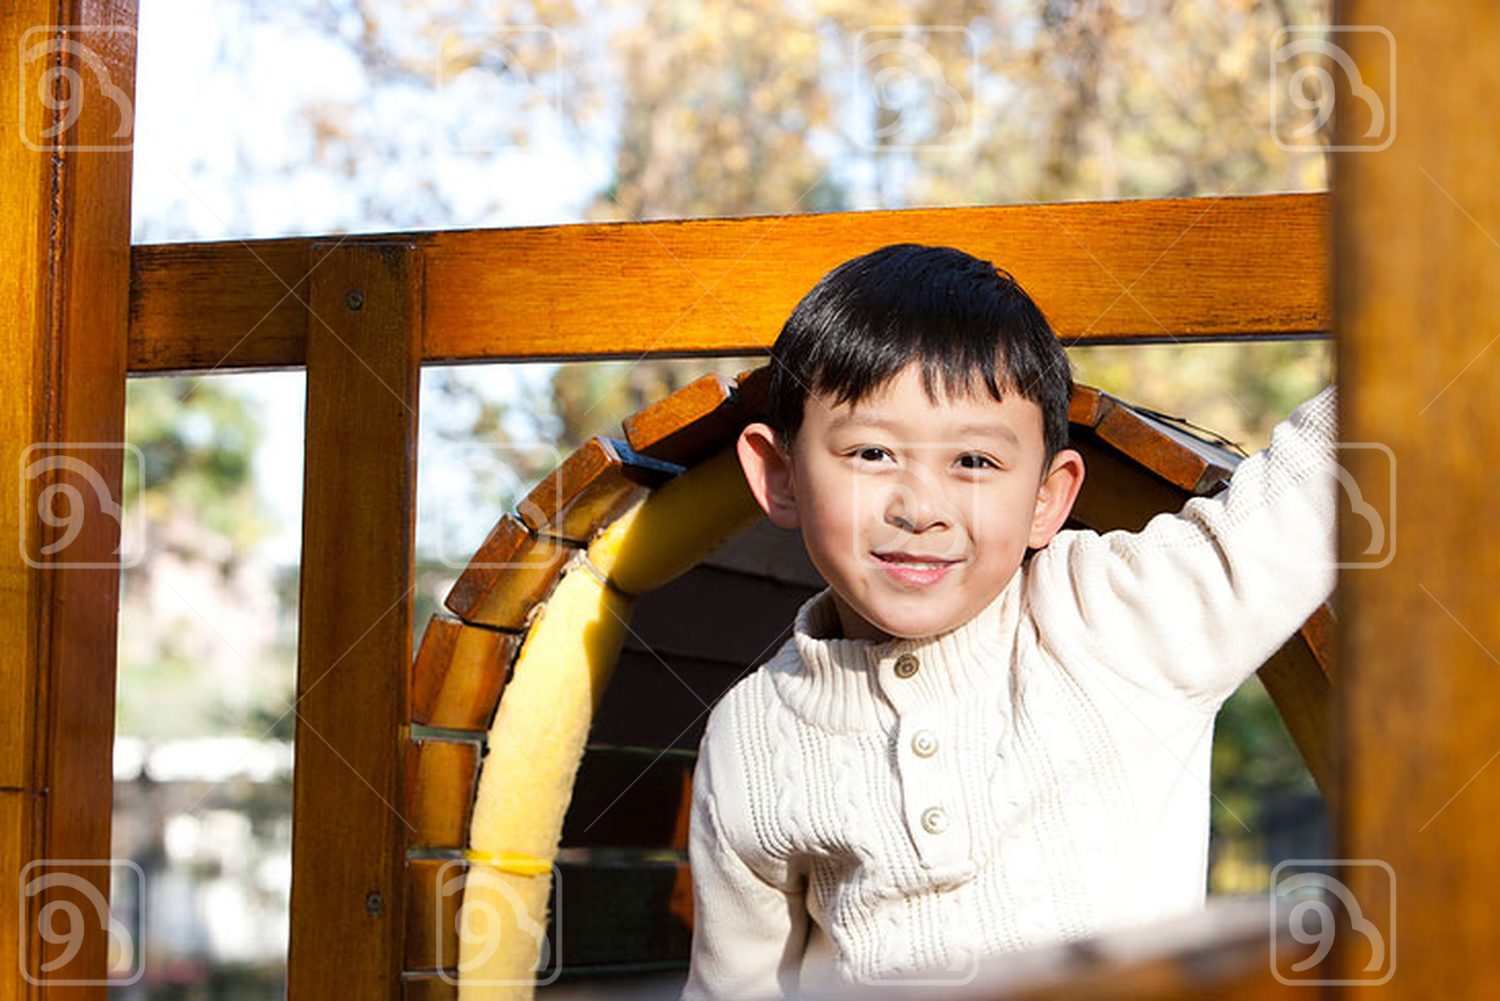 Chinese boy playing on playground toys